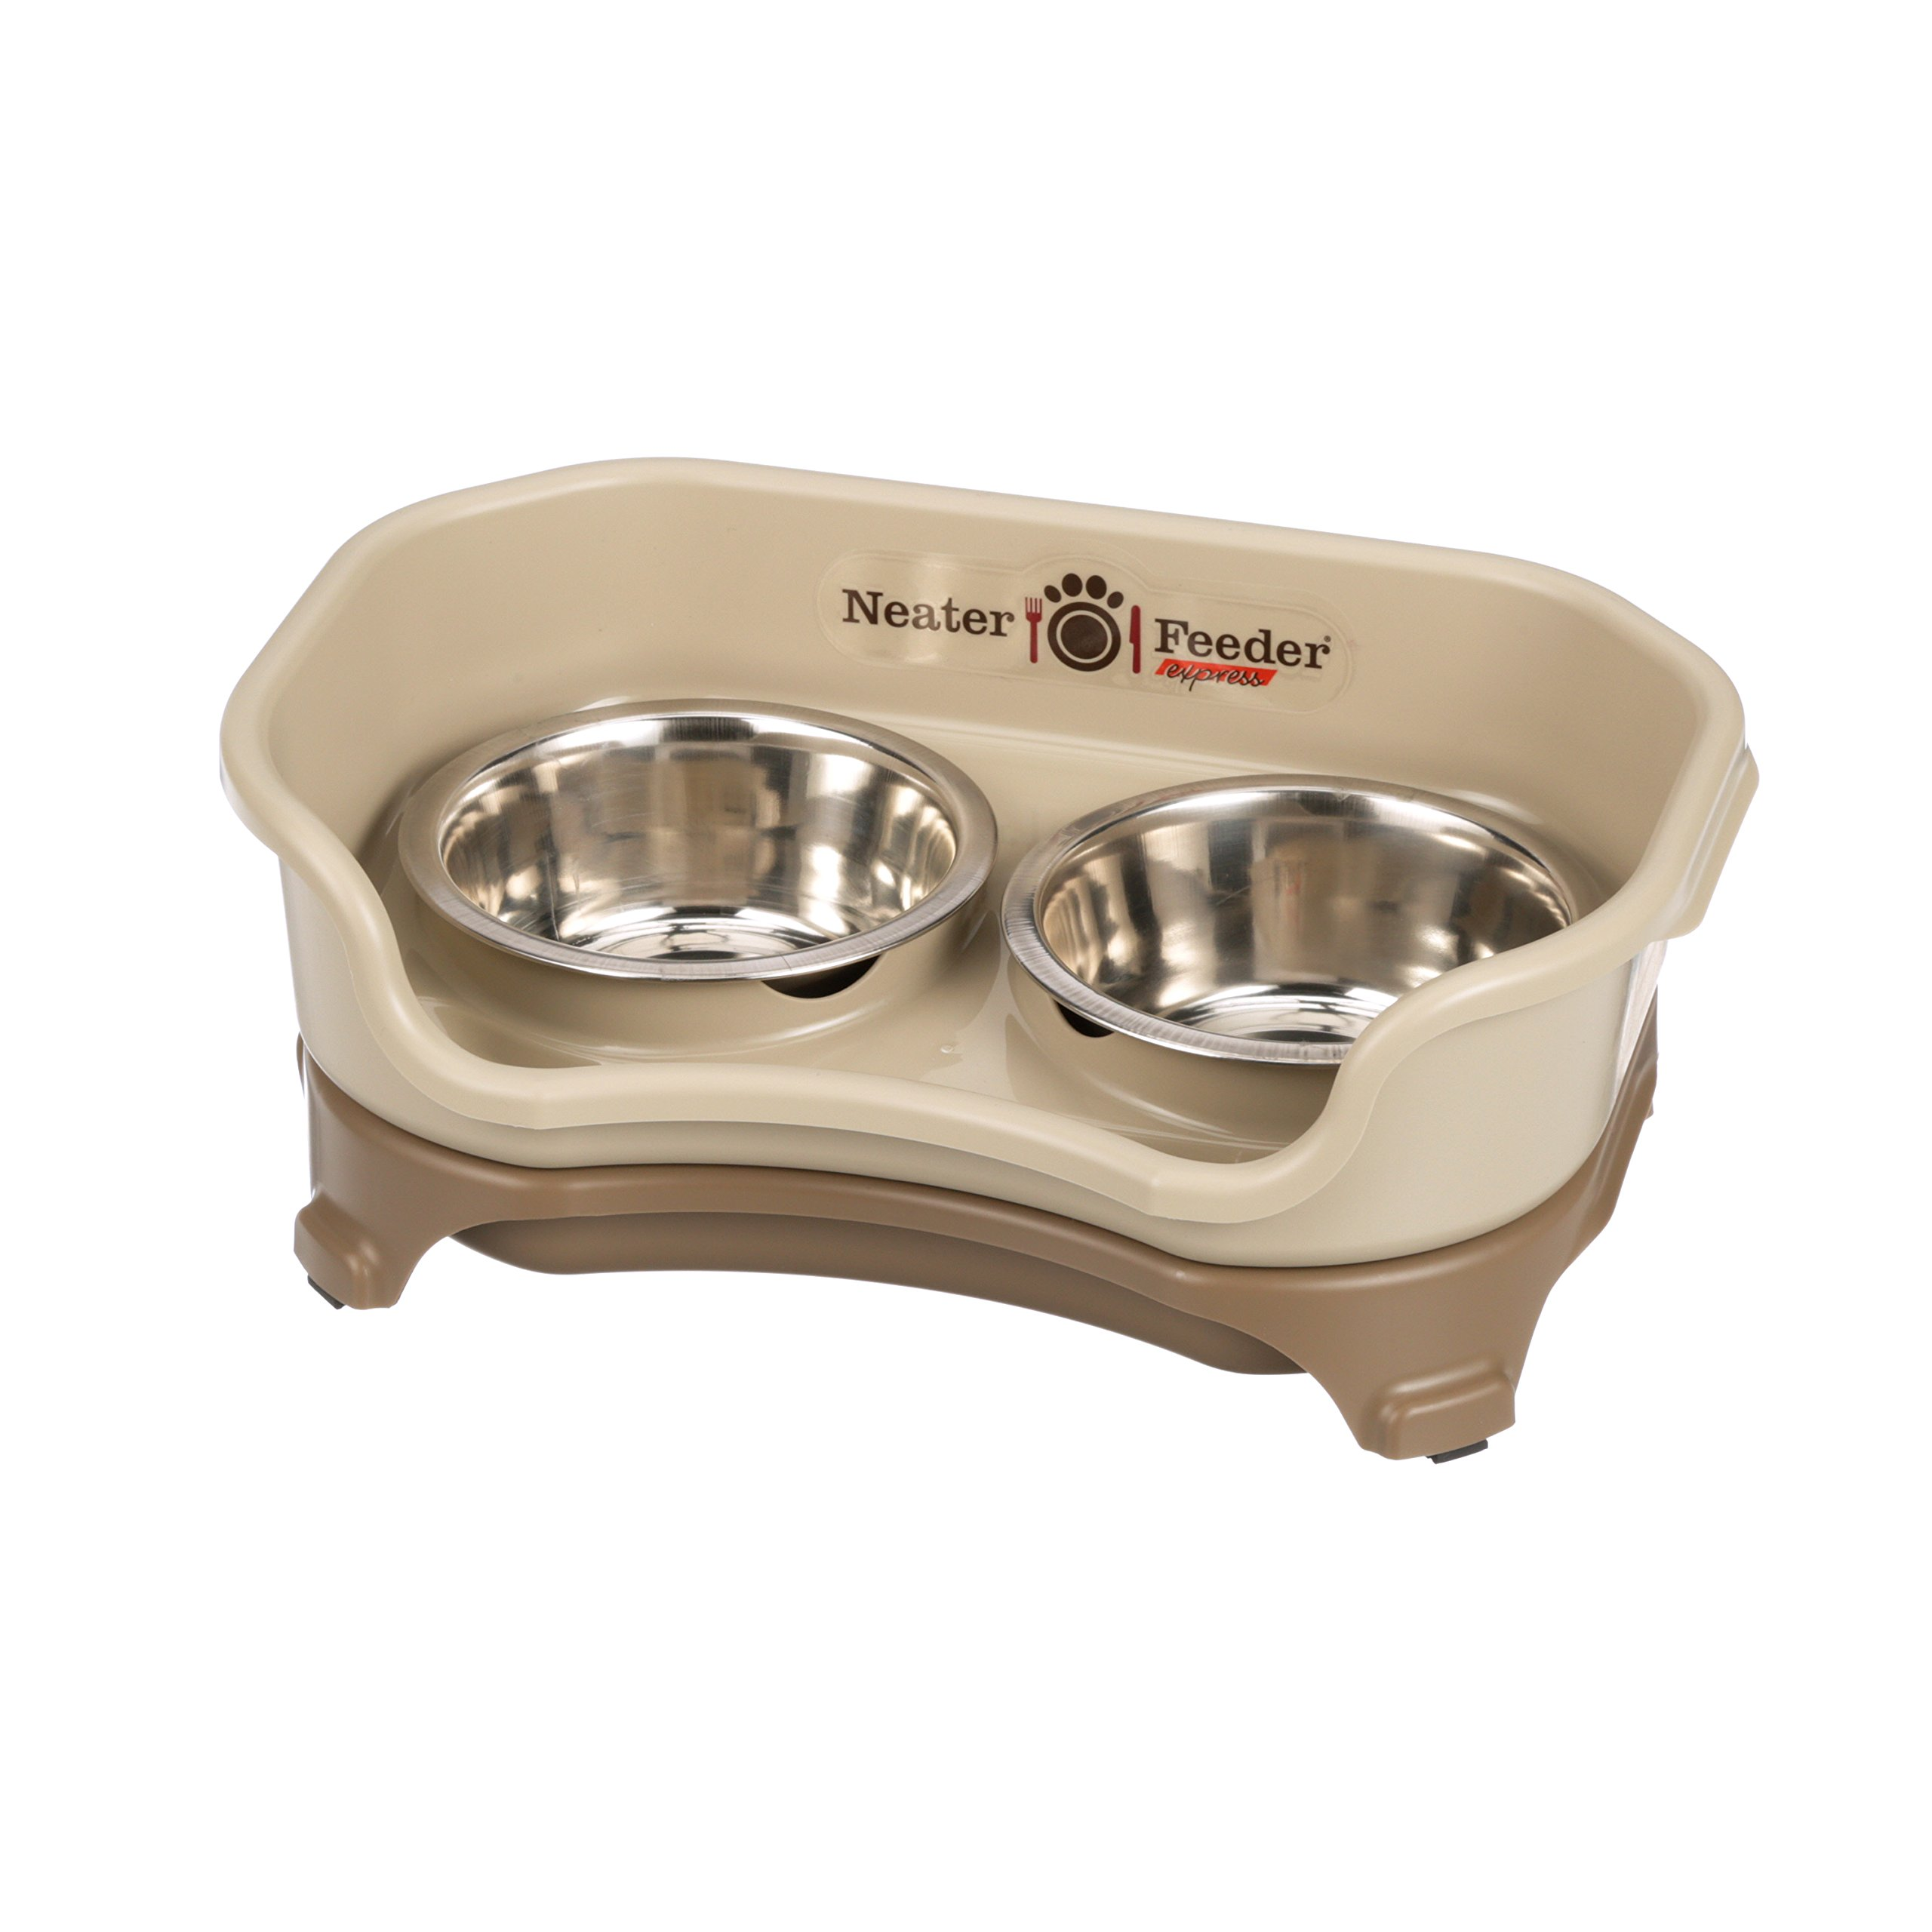 Neater Feeder Express (Small Dog) - With Stainless Steel Dog Bowls and Mess Proof Pet Feeder